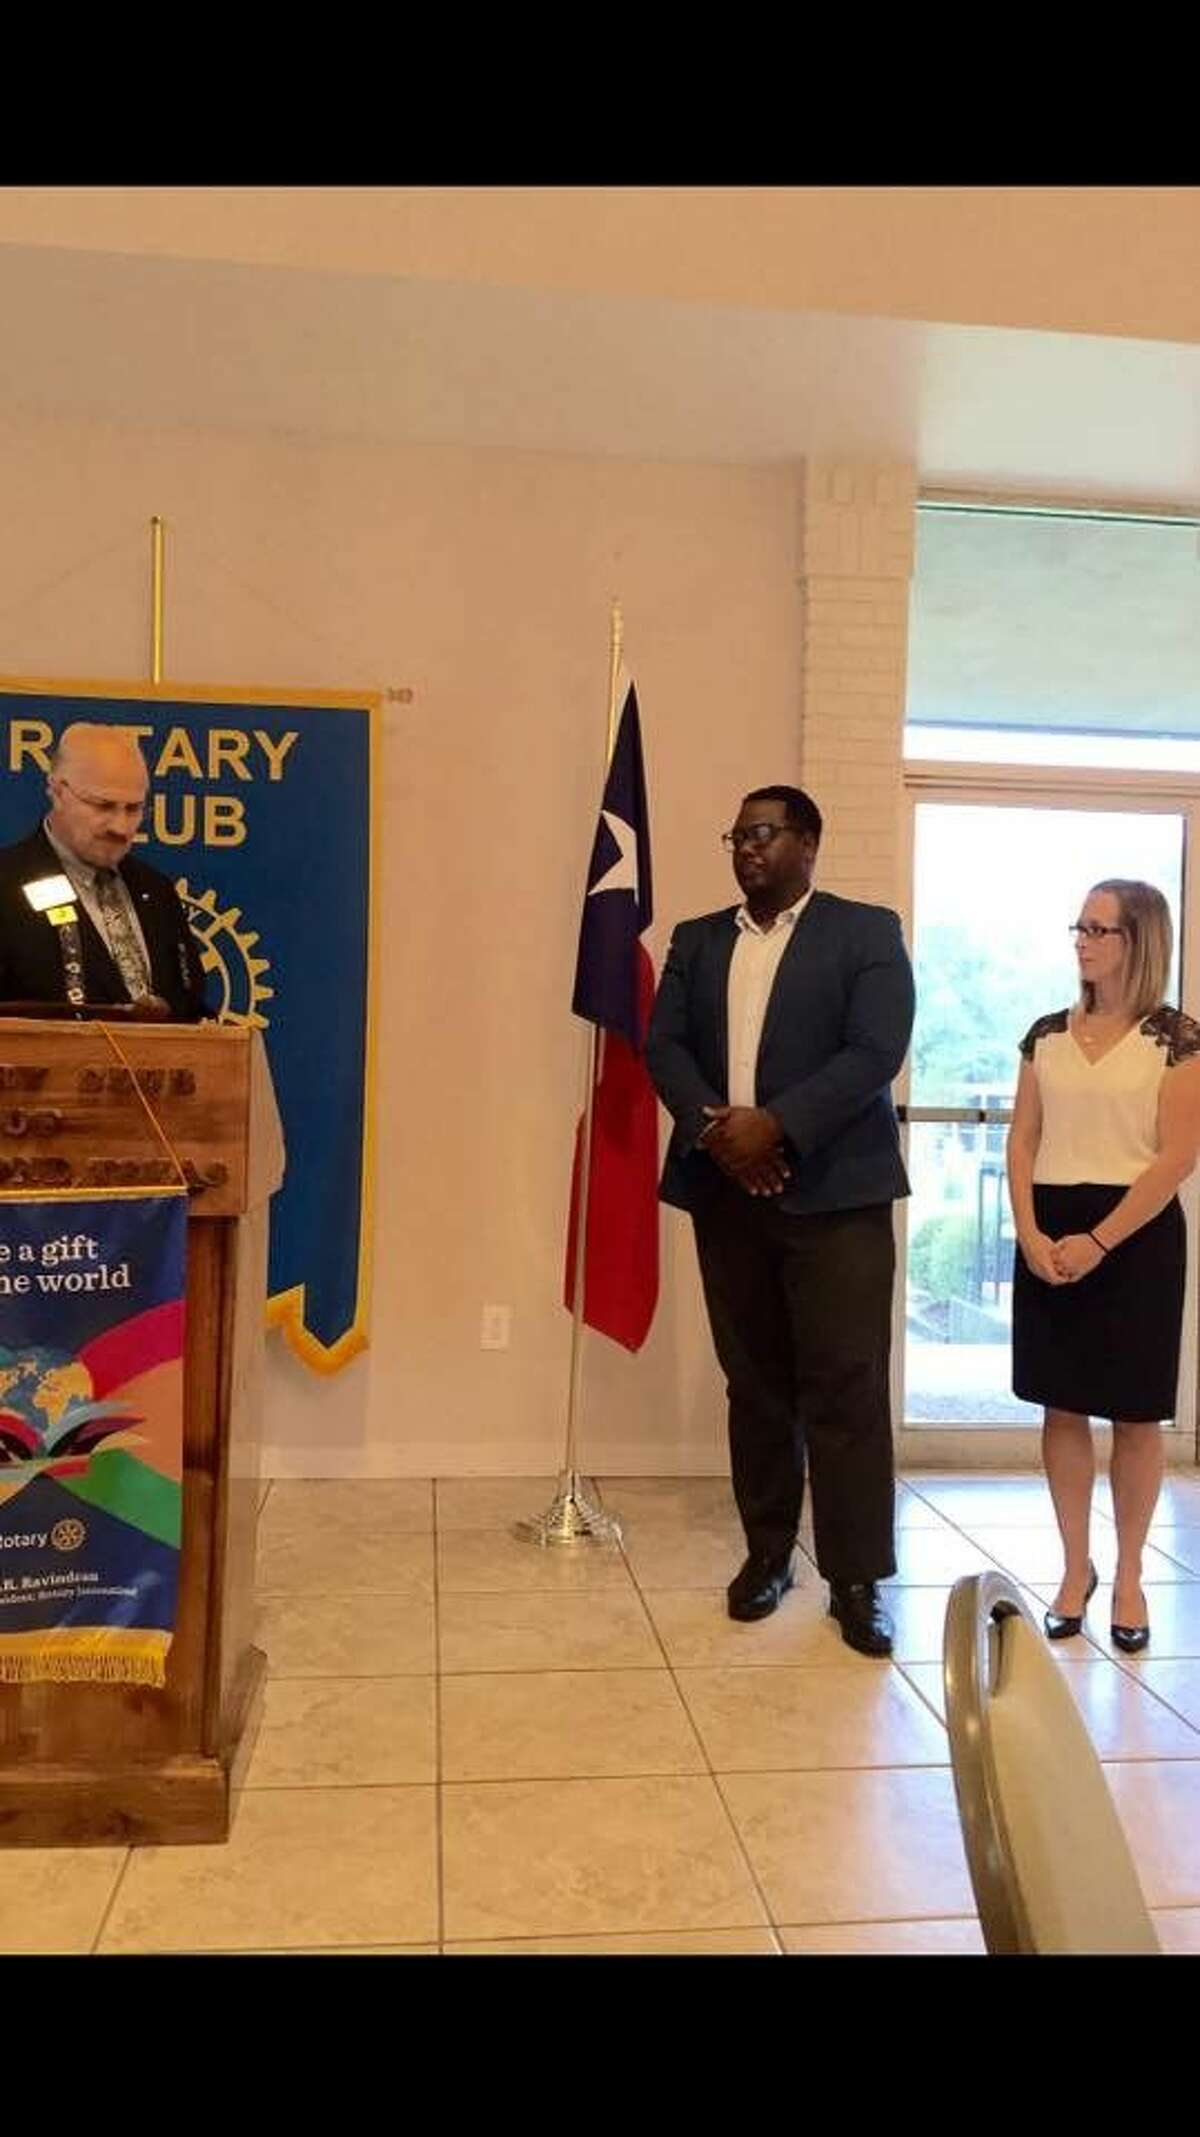 Pictured left to right are the Rotary Club District Governor Nick Giannone, and new inductees, Marquie Fontenot, and Michaela Filla.